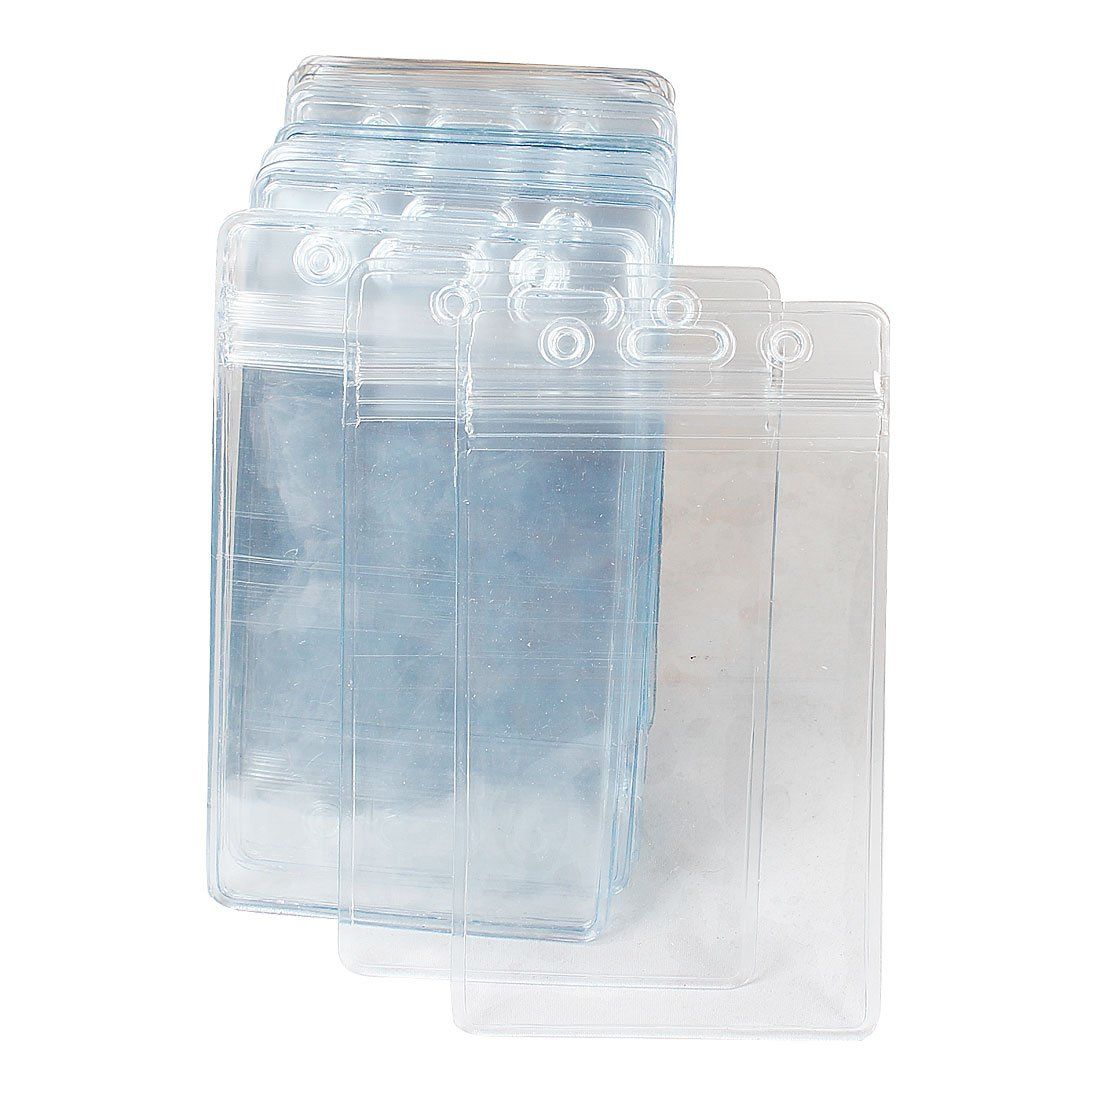 SOSW-50 Pcs Clear Plastic Vertical Name Tag Badge ID Card Holders